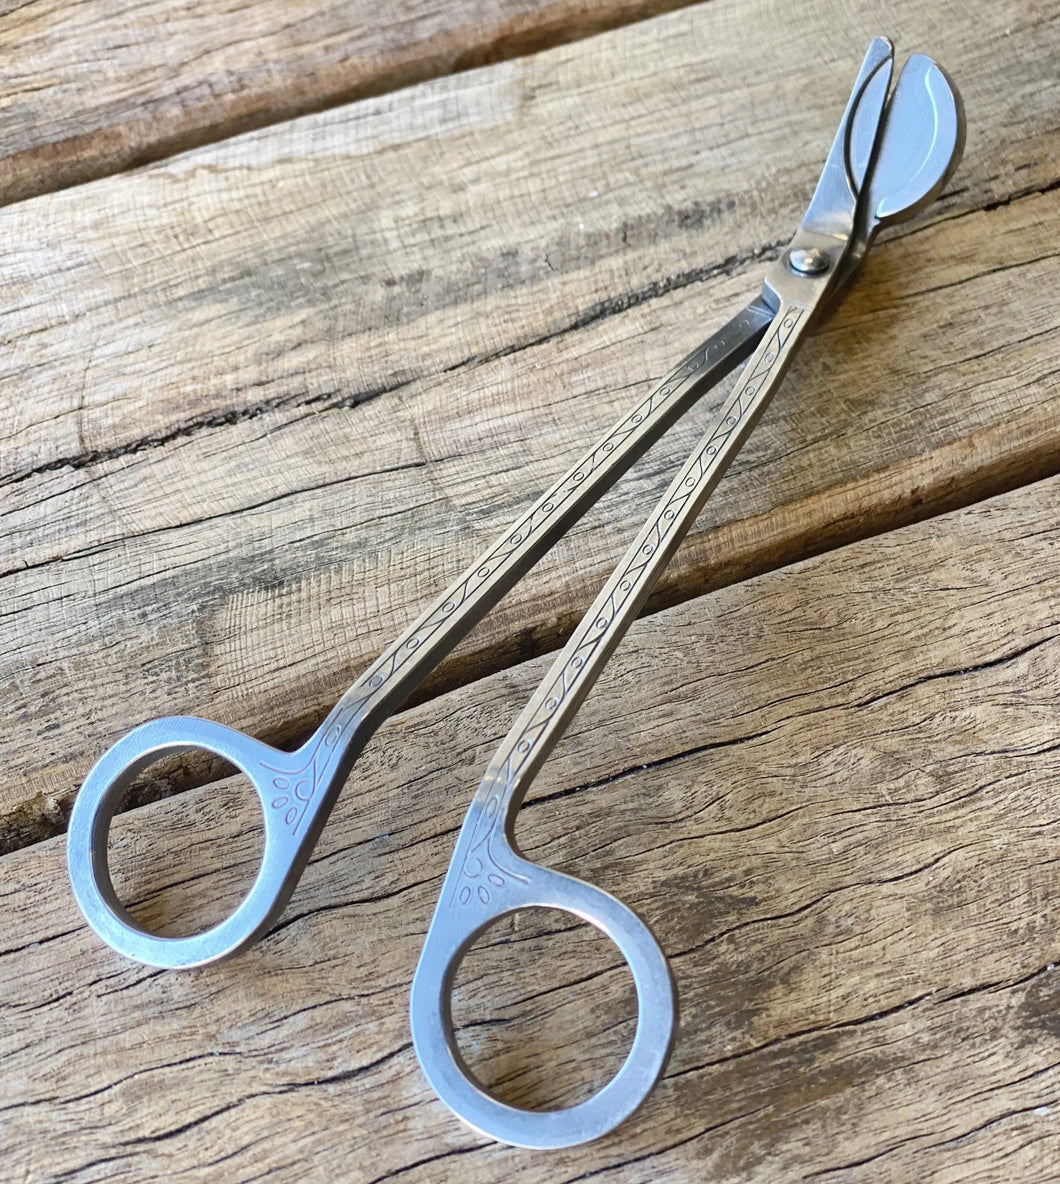 WICK TRIMMERS - STEEL WITH ANTIQUE DETAIL